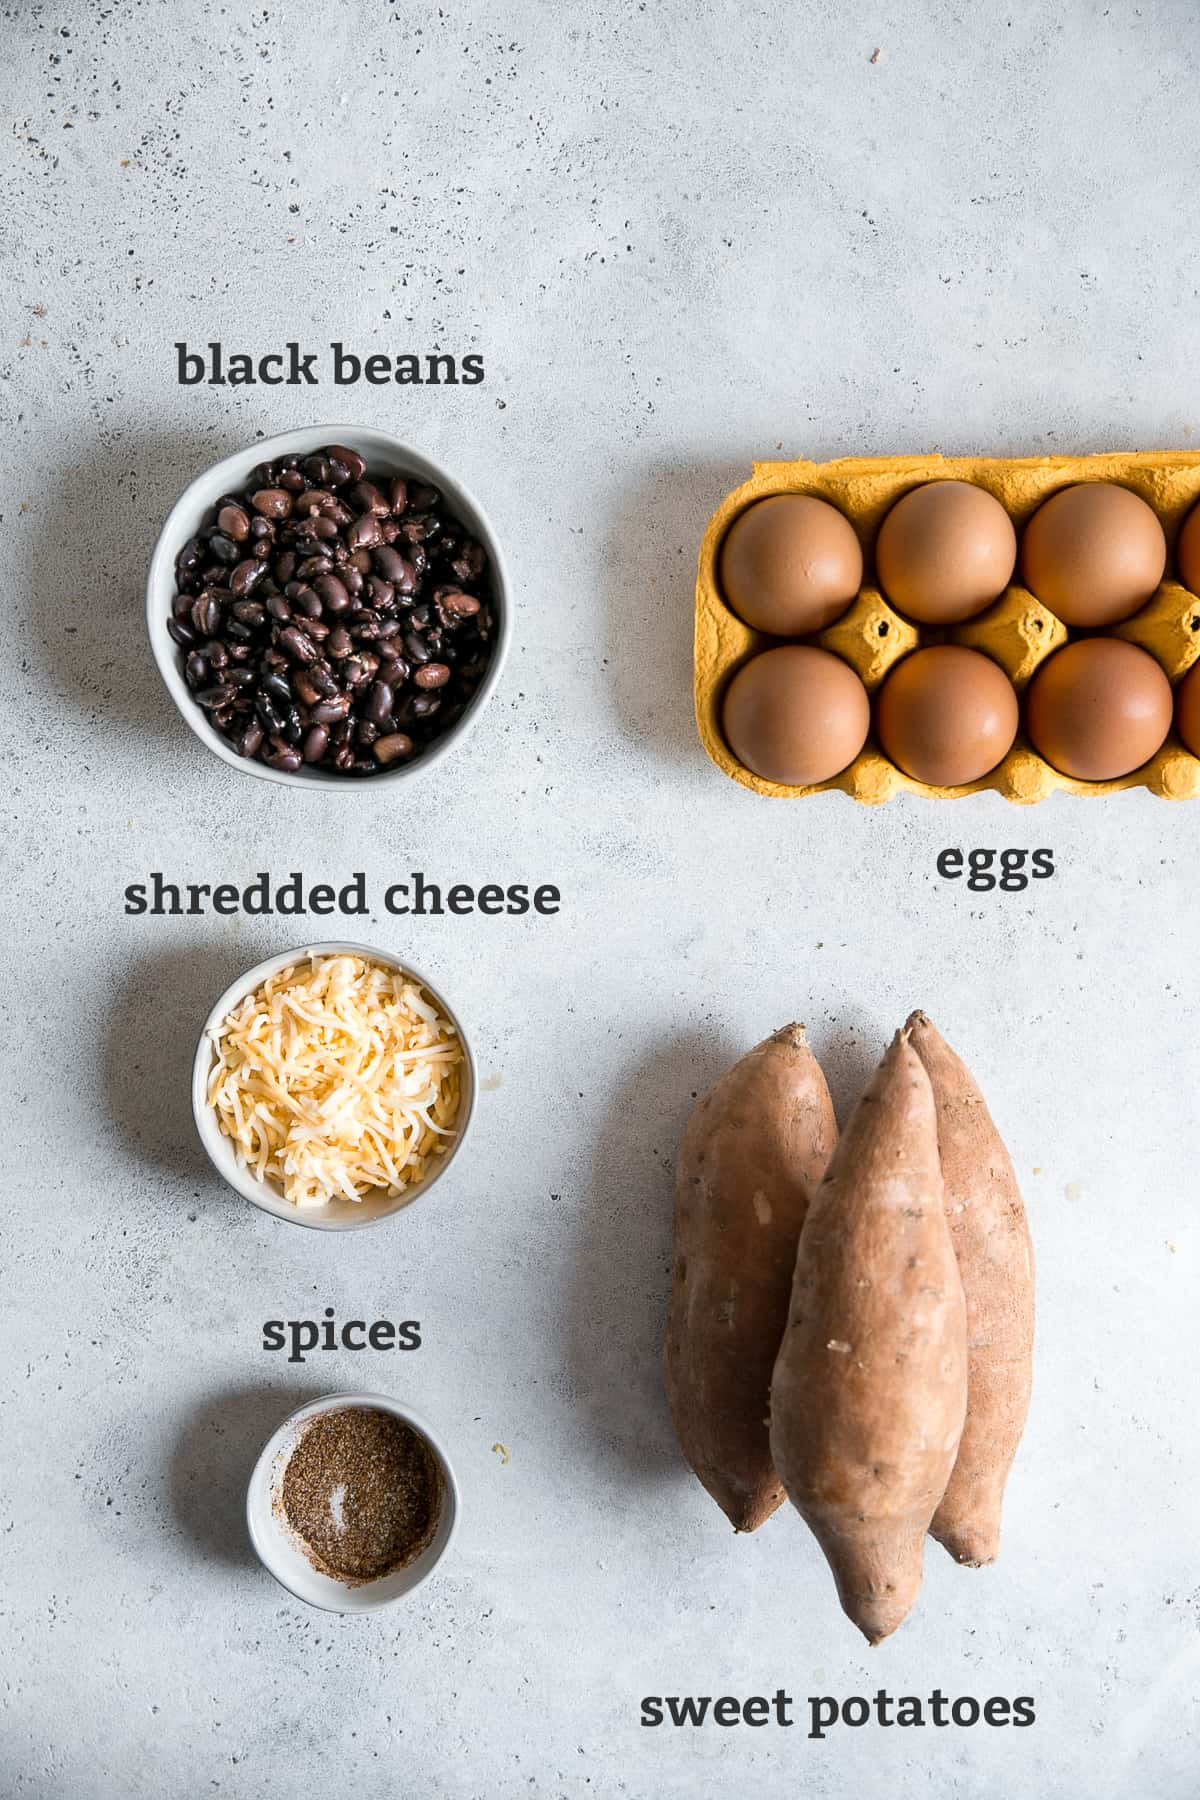 black beans, cheese, sweet potatoes, and eggs on board with text by each ingredient